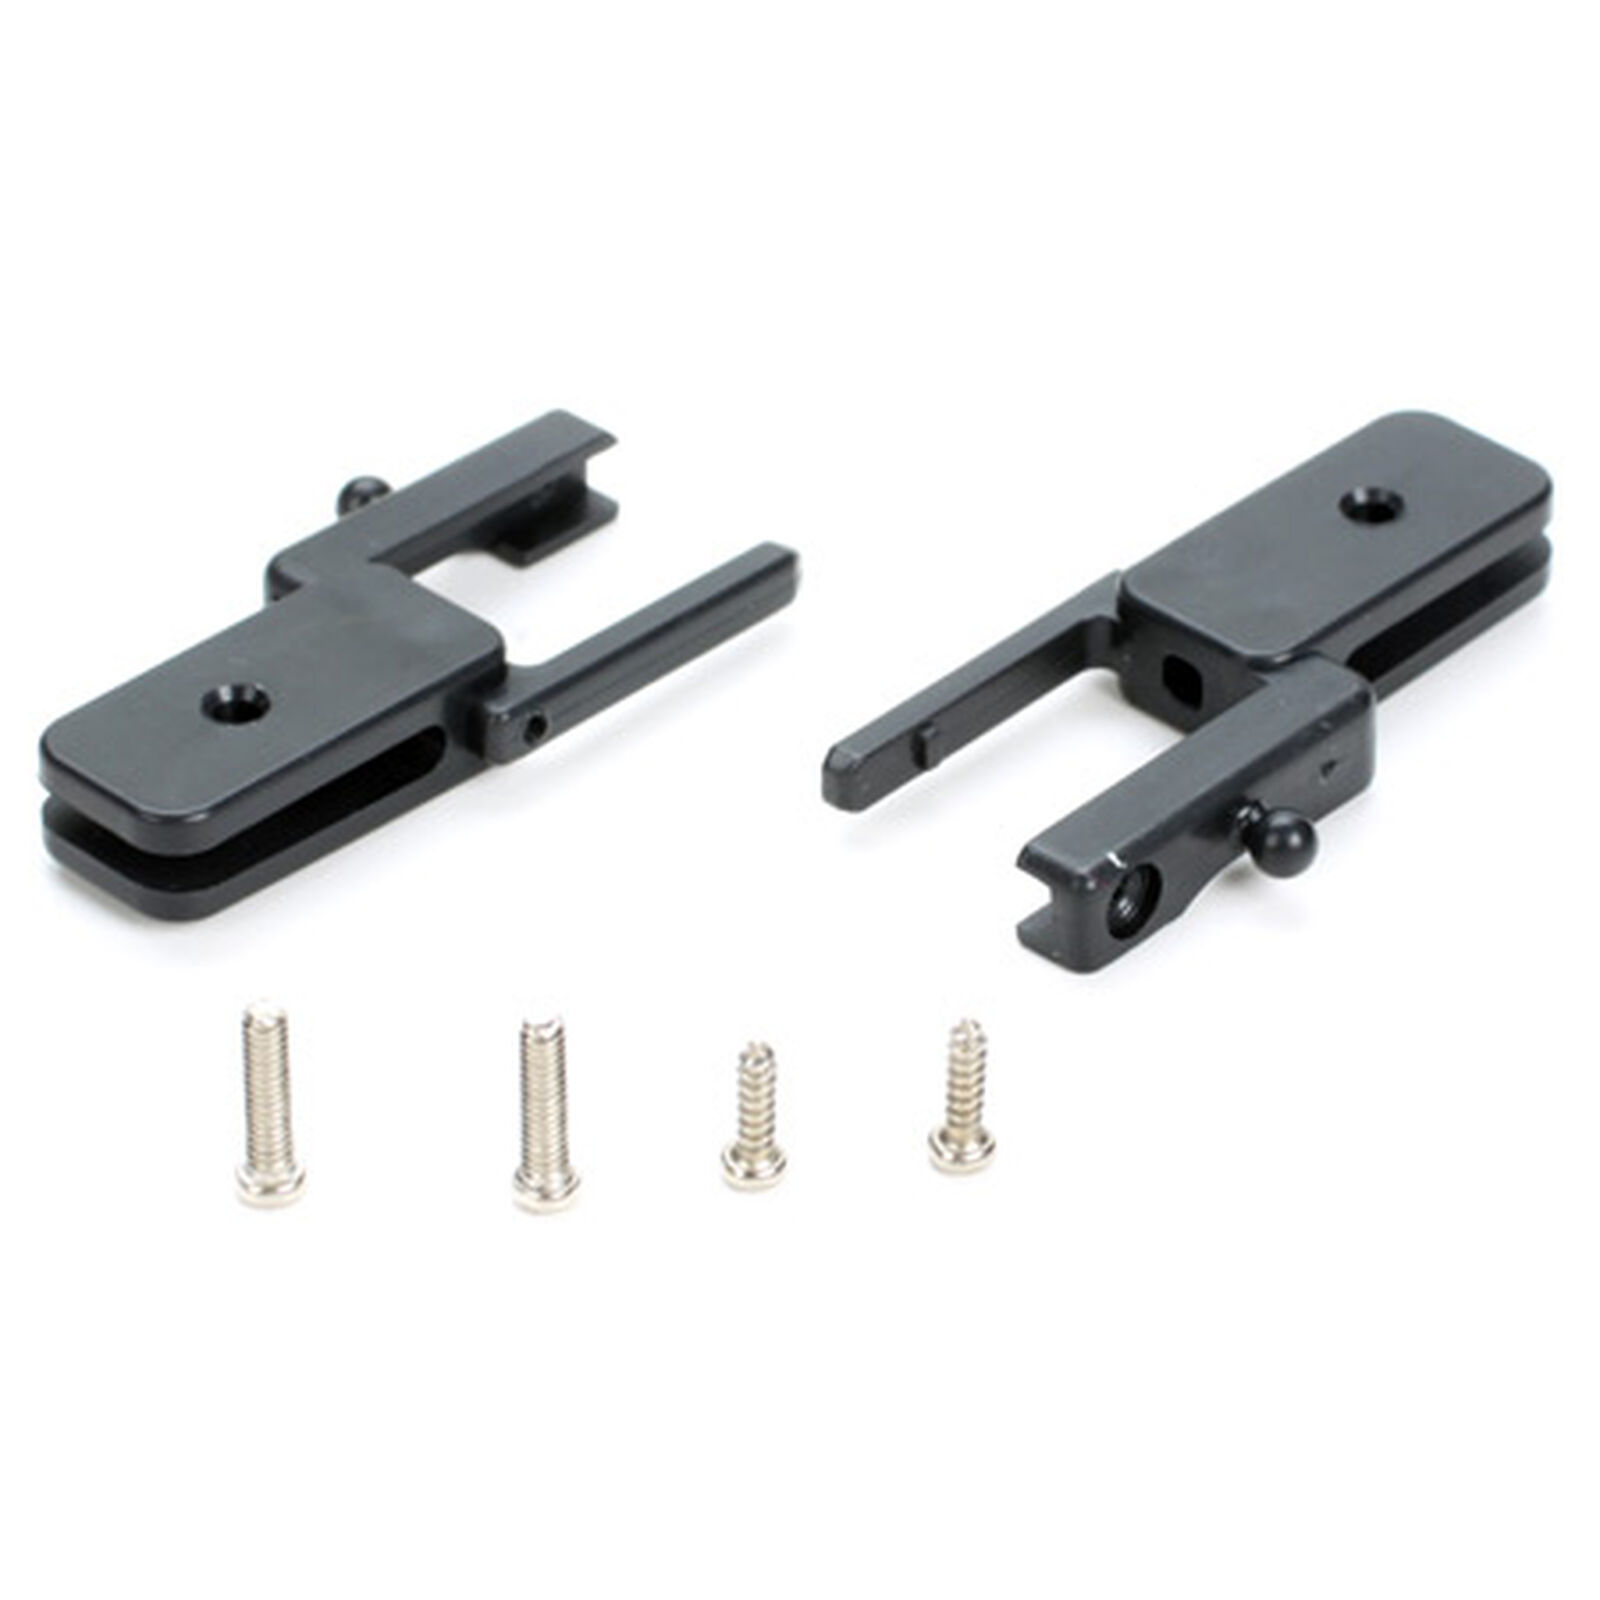 Main Blade Grips with Hardware: 120SR